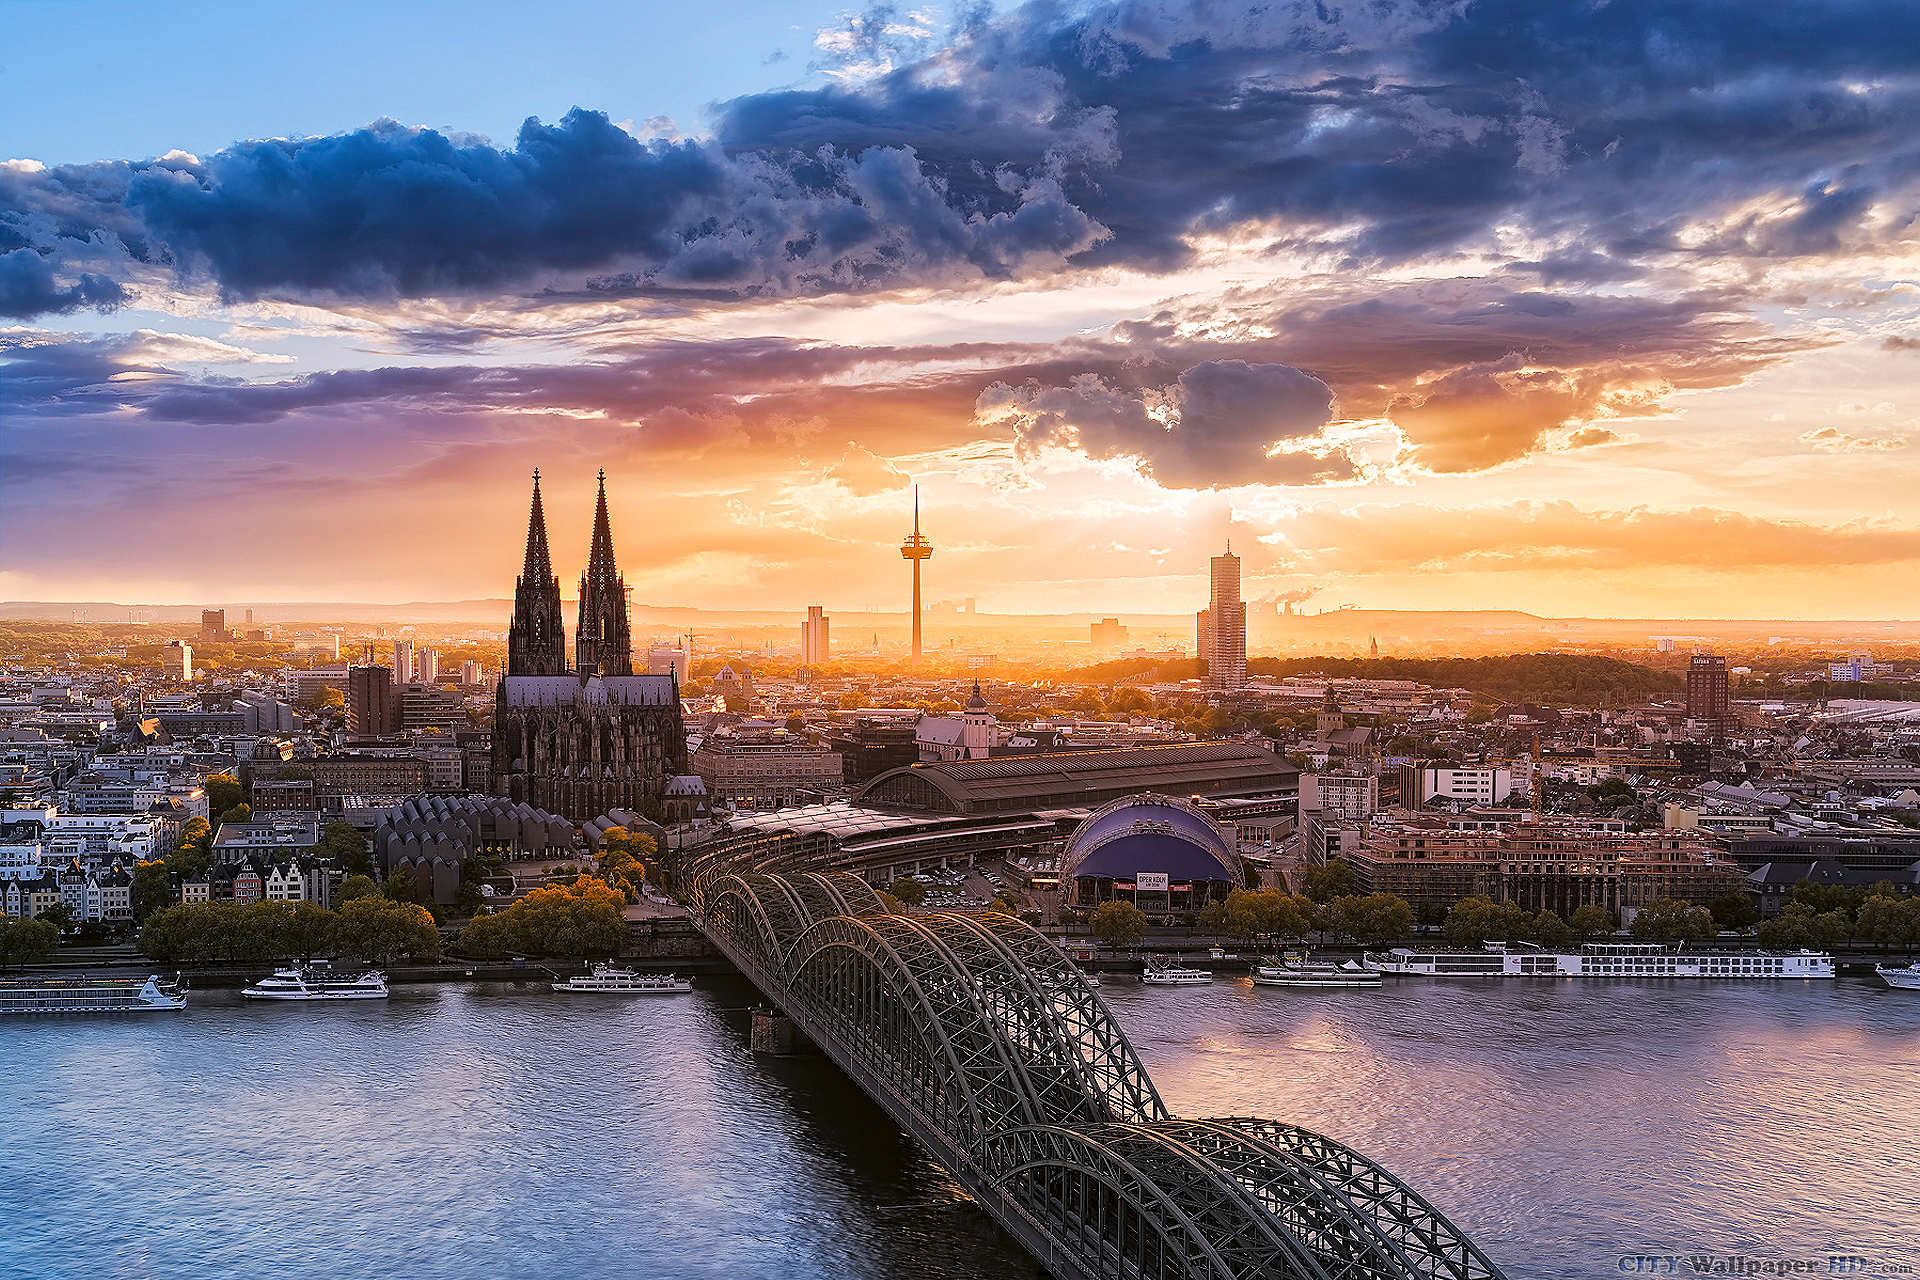 Cologne wallpaper cityscapes PC Cologne Germany bridge 1920x1280